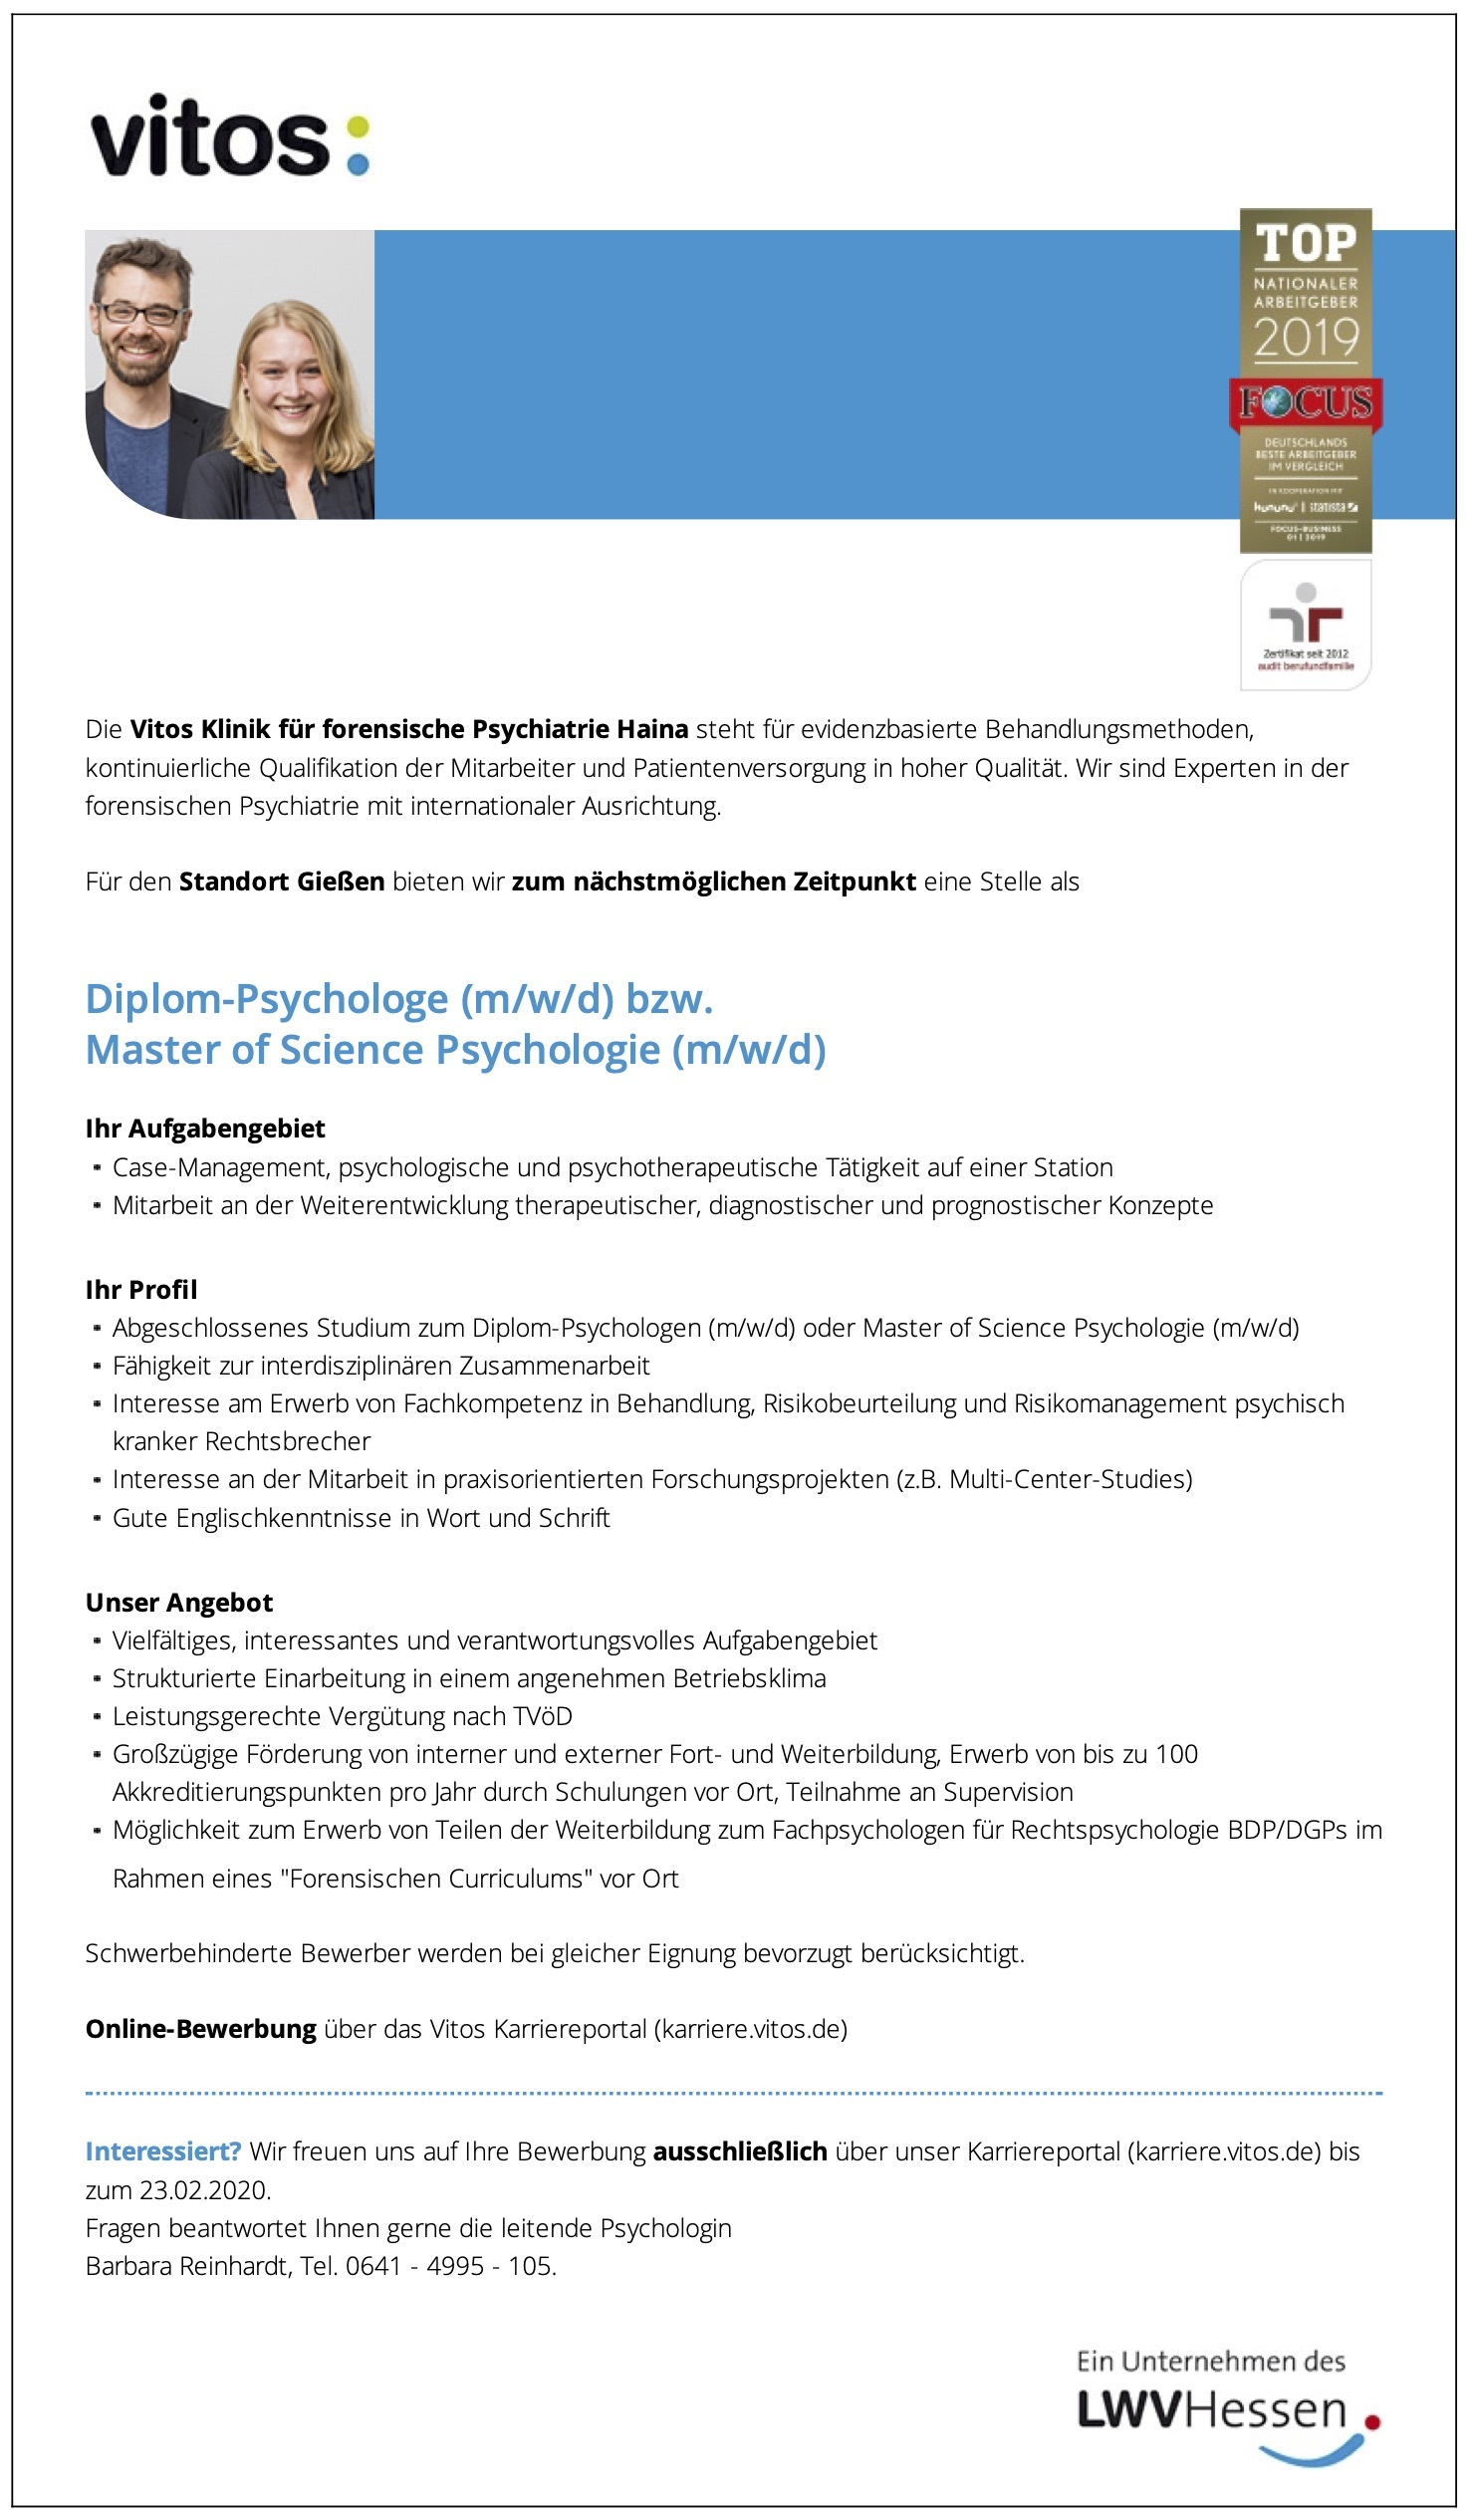 Diplom-Psychologe (m/w/d) bzw. Master of Science Psychologie (m/w/d)